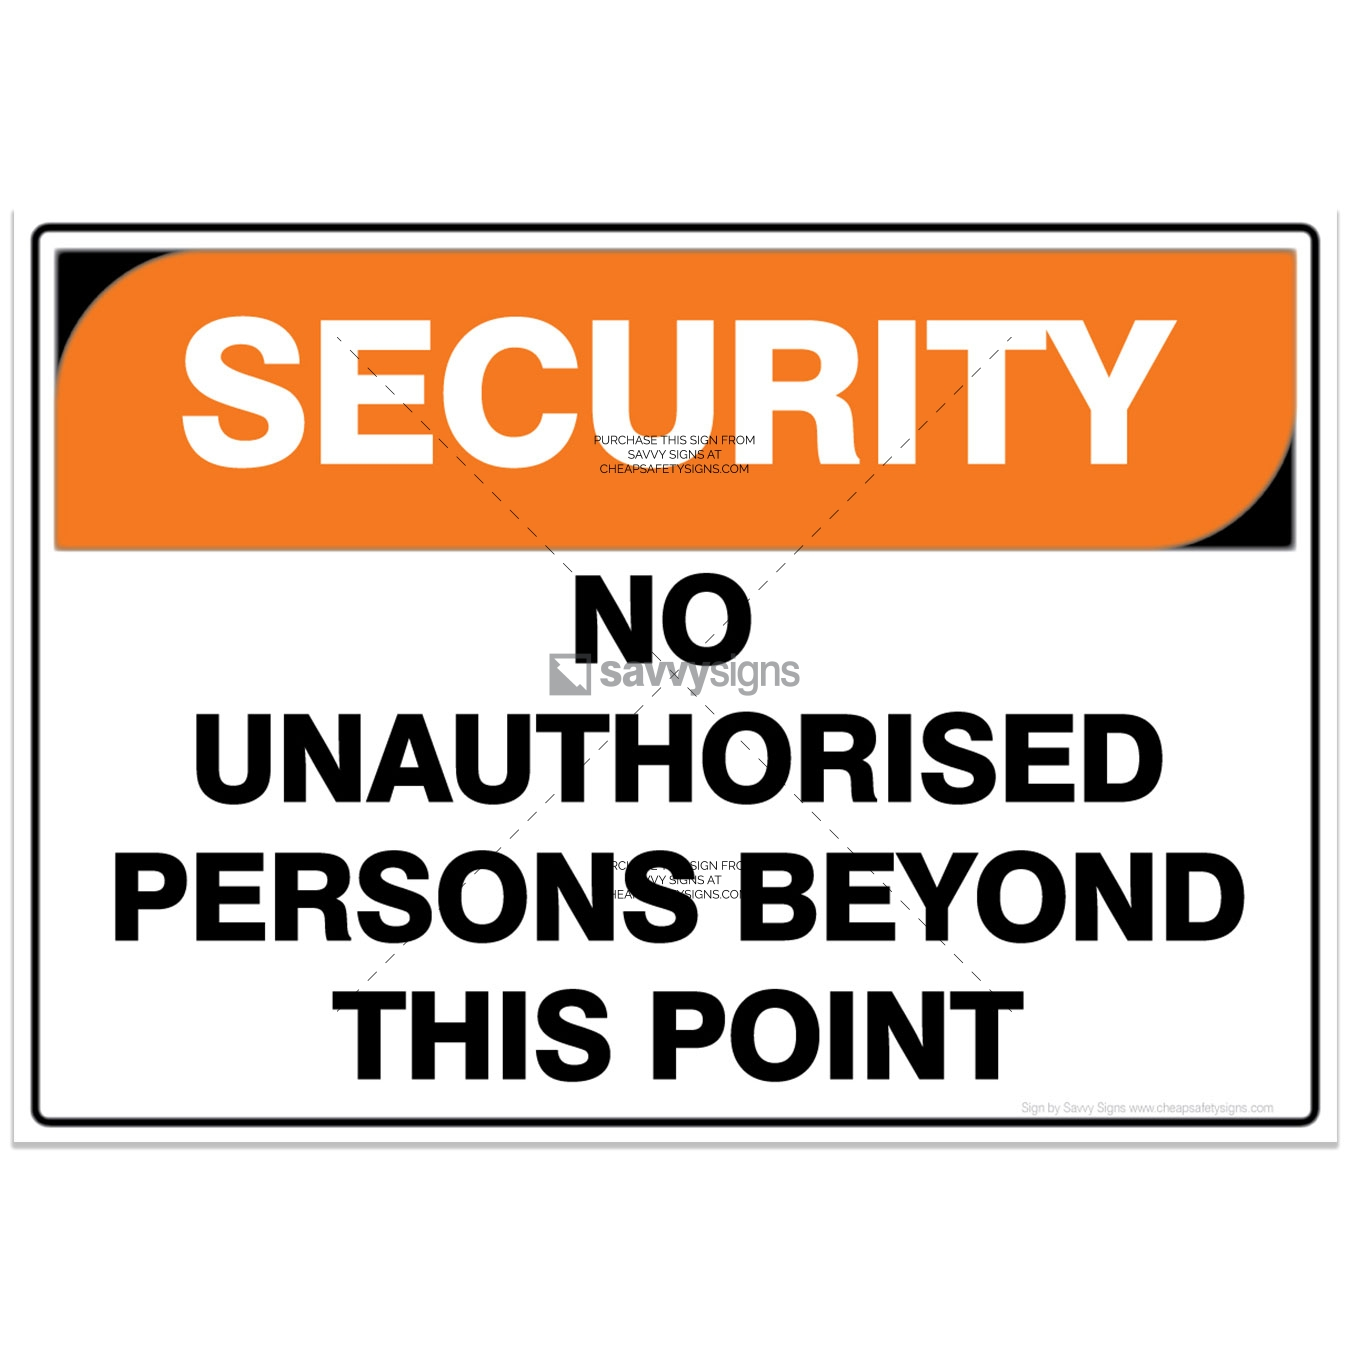 SSSEC3015-SECURITY-Workplace-Safety-Signs_Savvy-Signs_v3